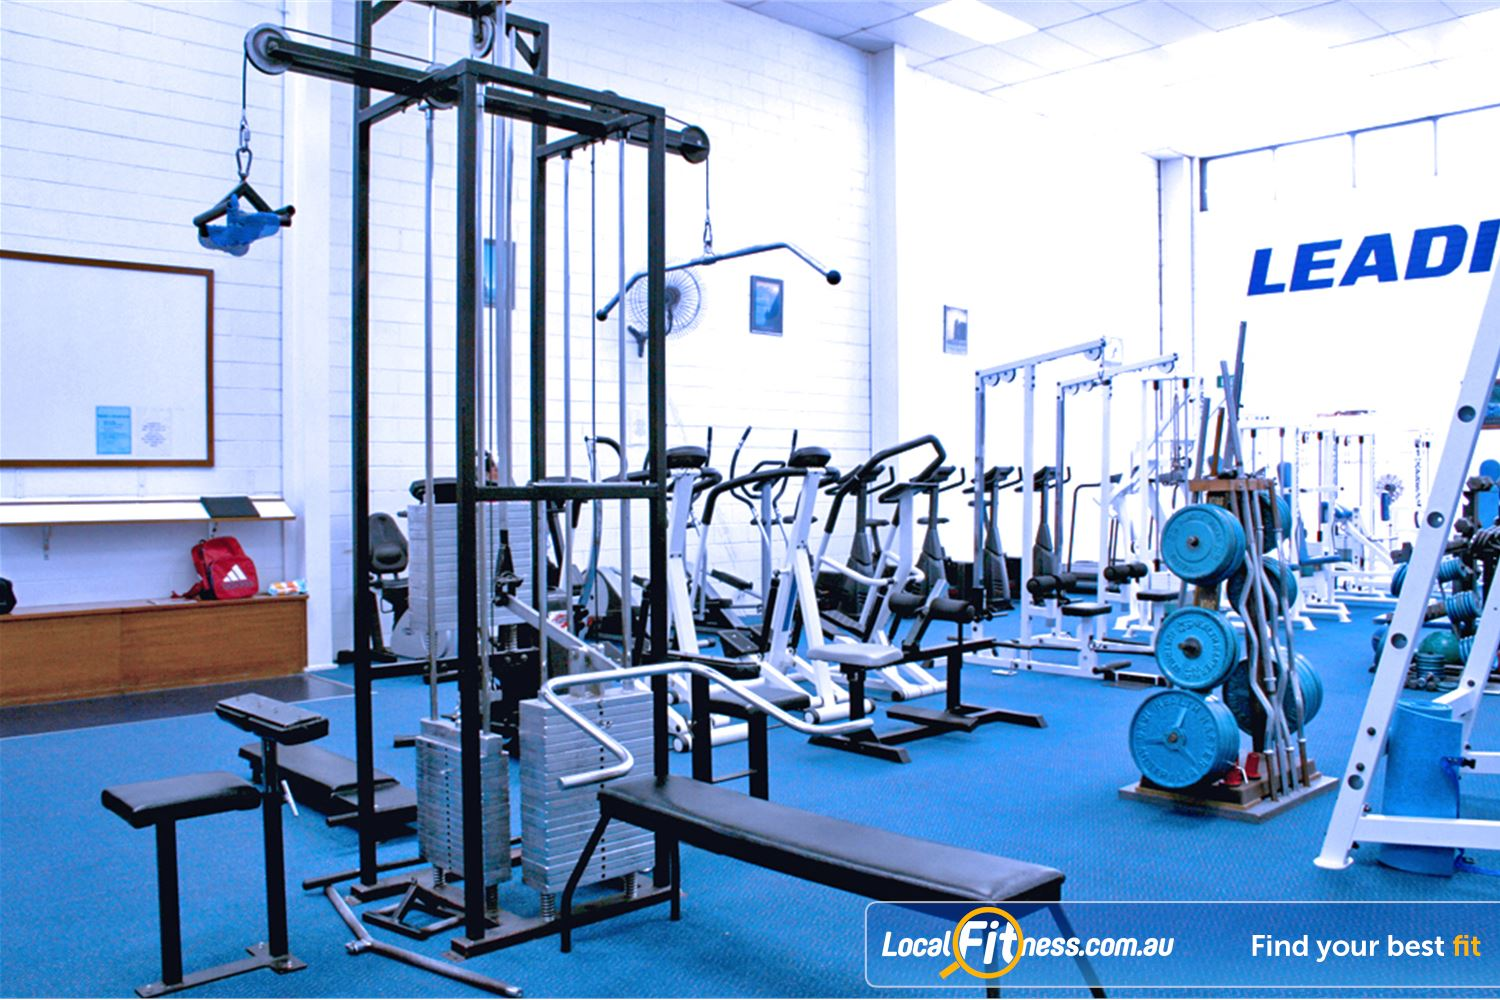 Leading Edge Health & Fitness Near Wheelers Hill All your favorite machines including bench, lat pull downs, rows and more.